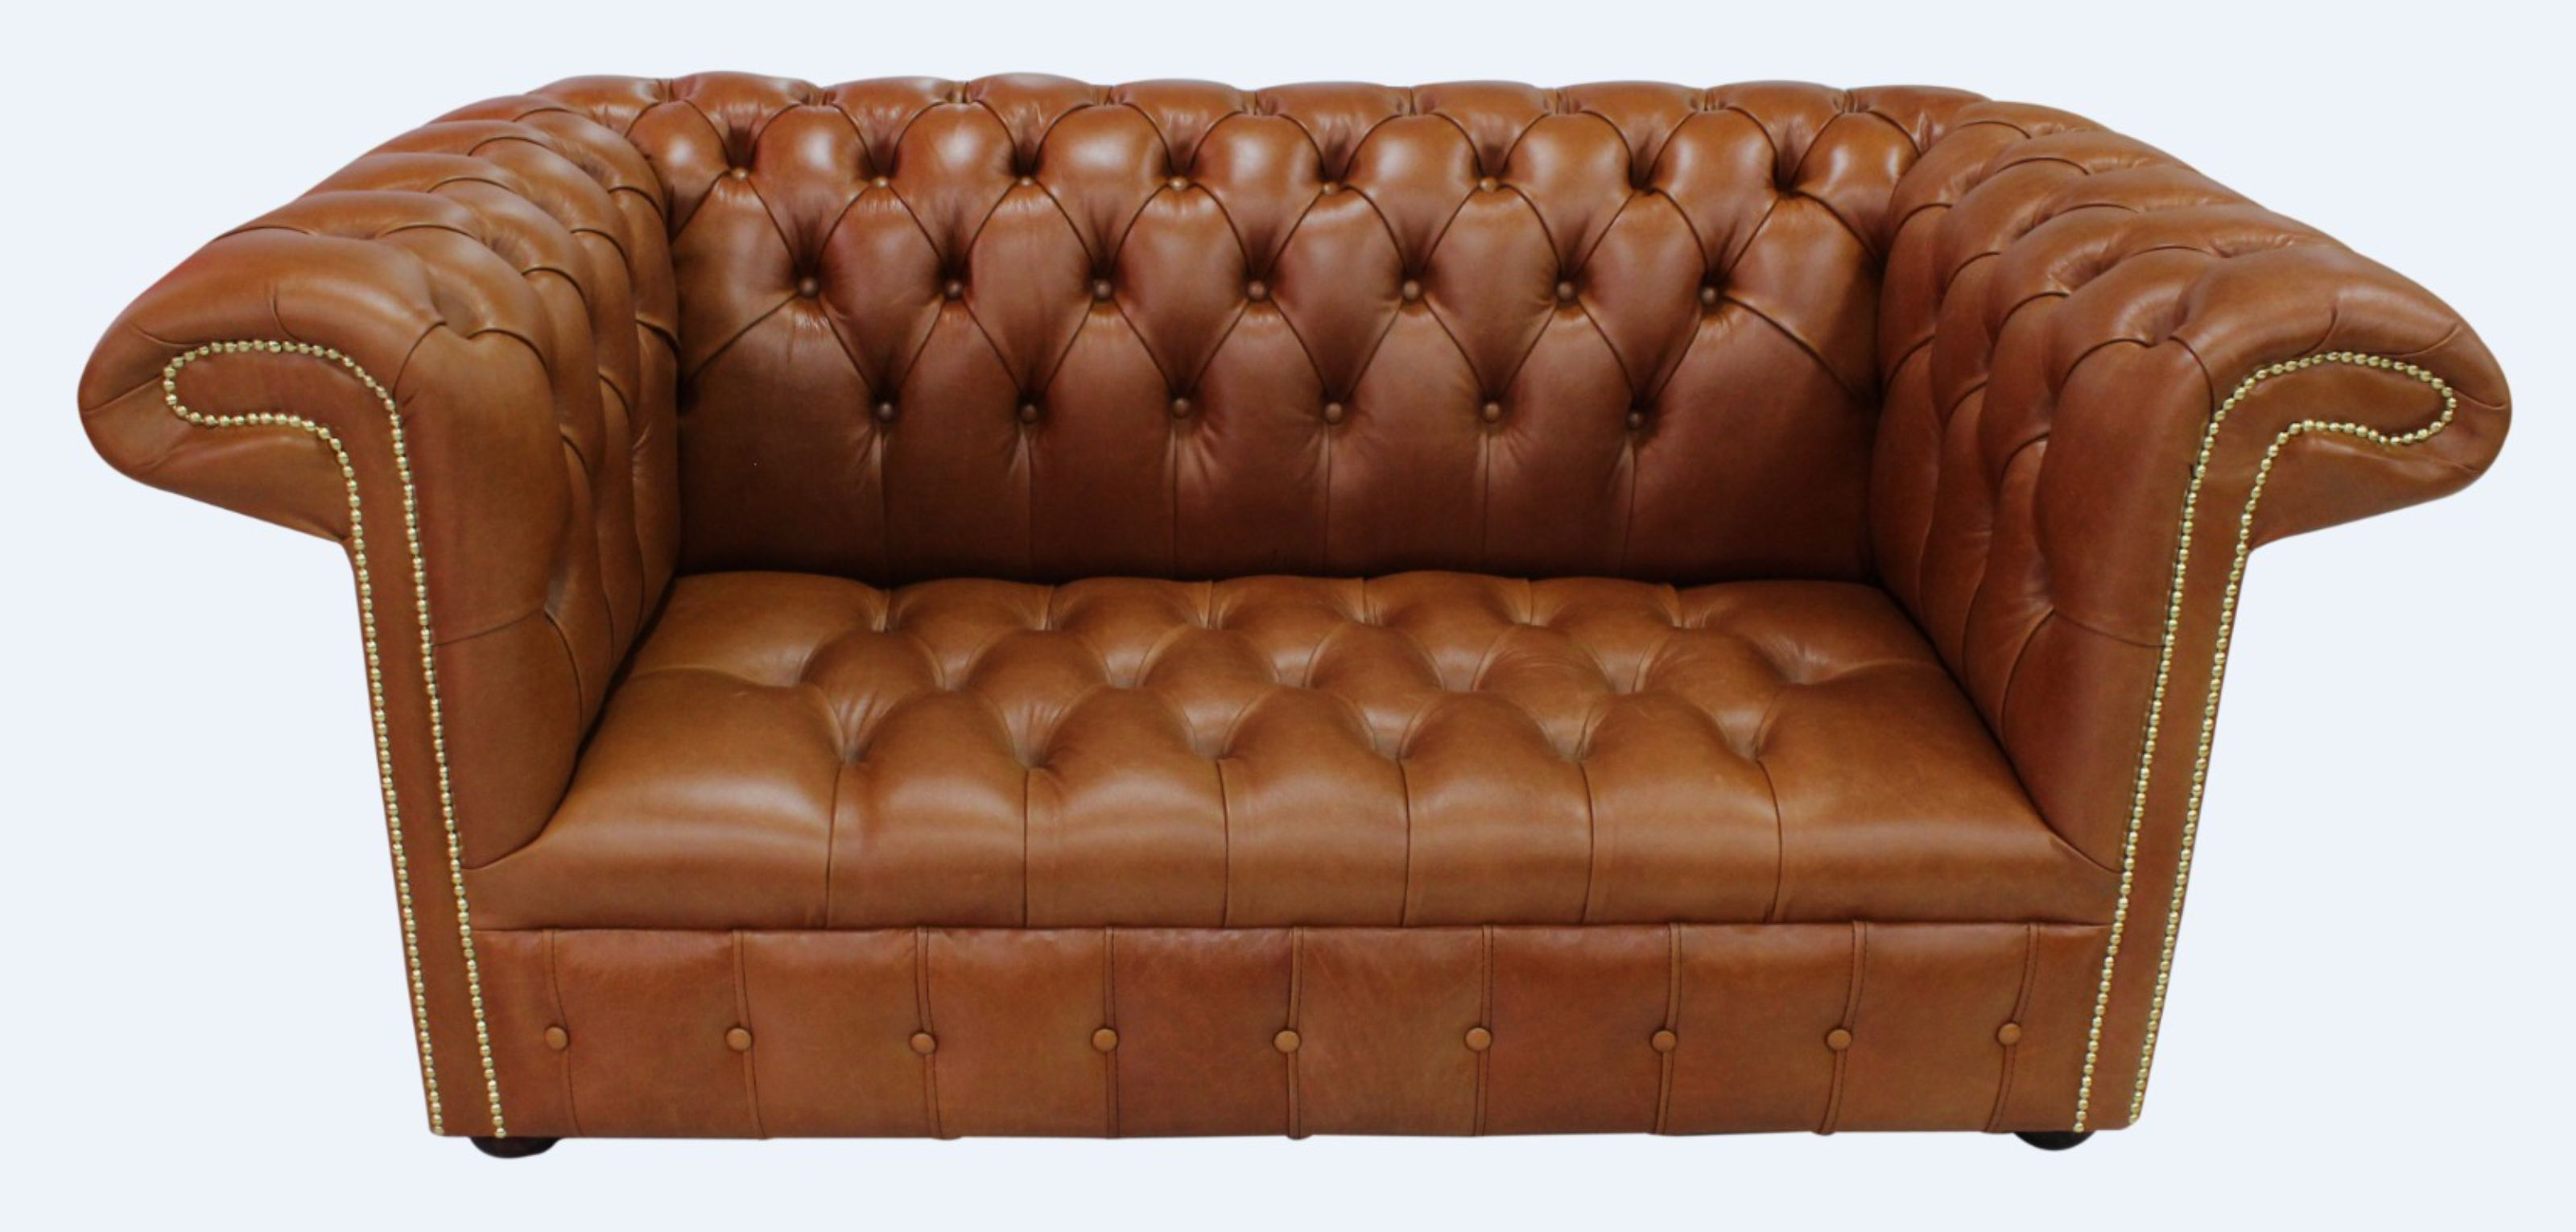 Chesterfield 1857 2 Seater Buttoned Seat Leather Sofa Old English Bruciato